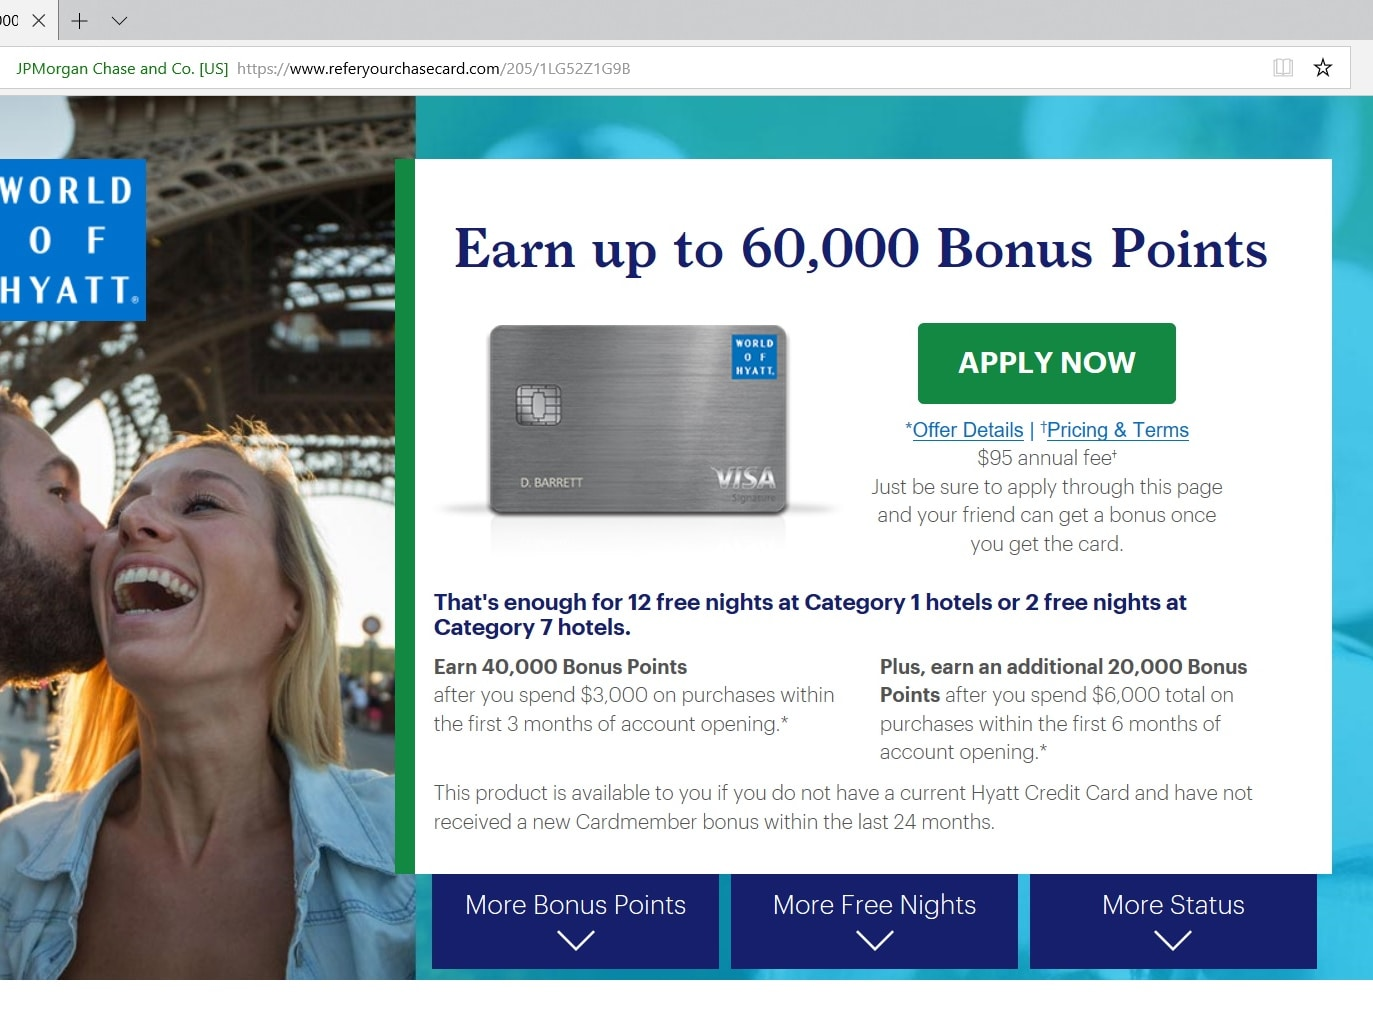 Chase World Of Hyatt Credit Card : 60,000 Hyatt Point Signup Bonus